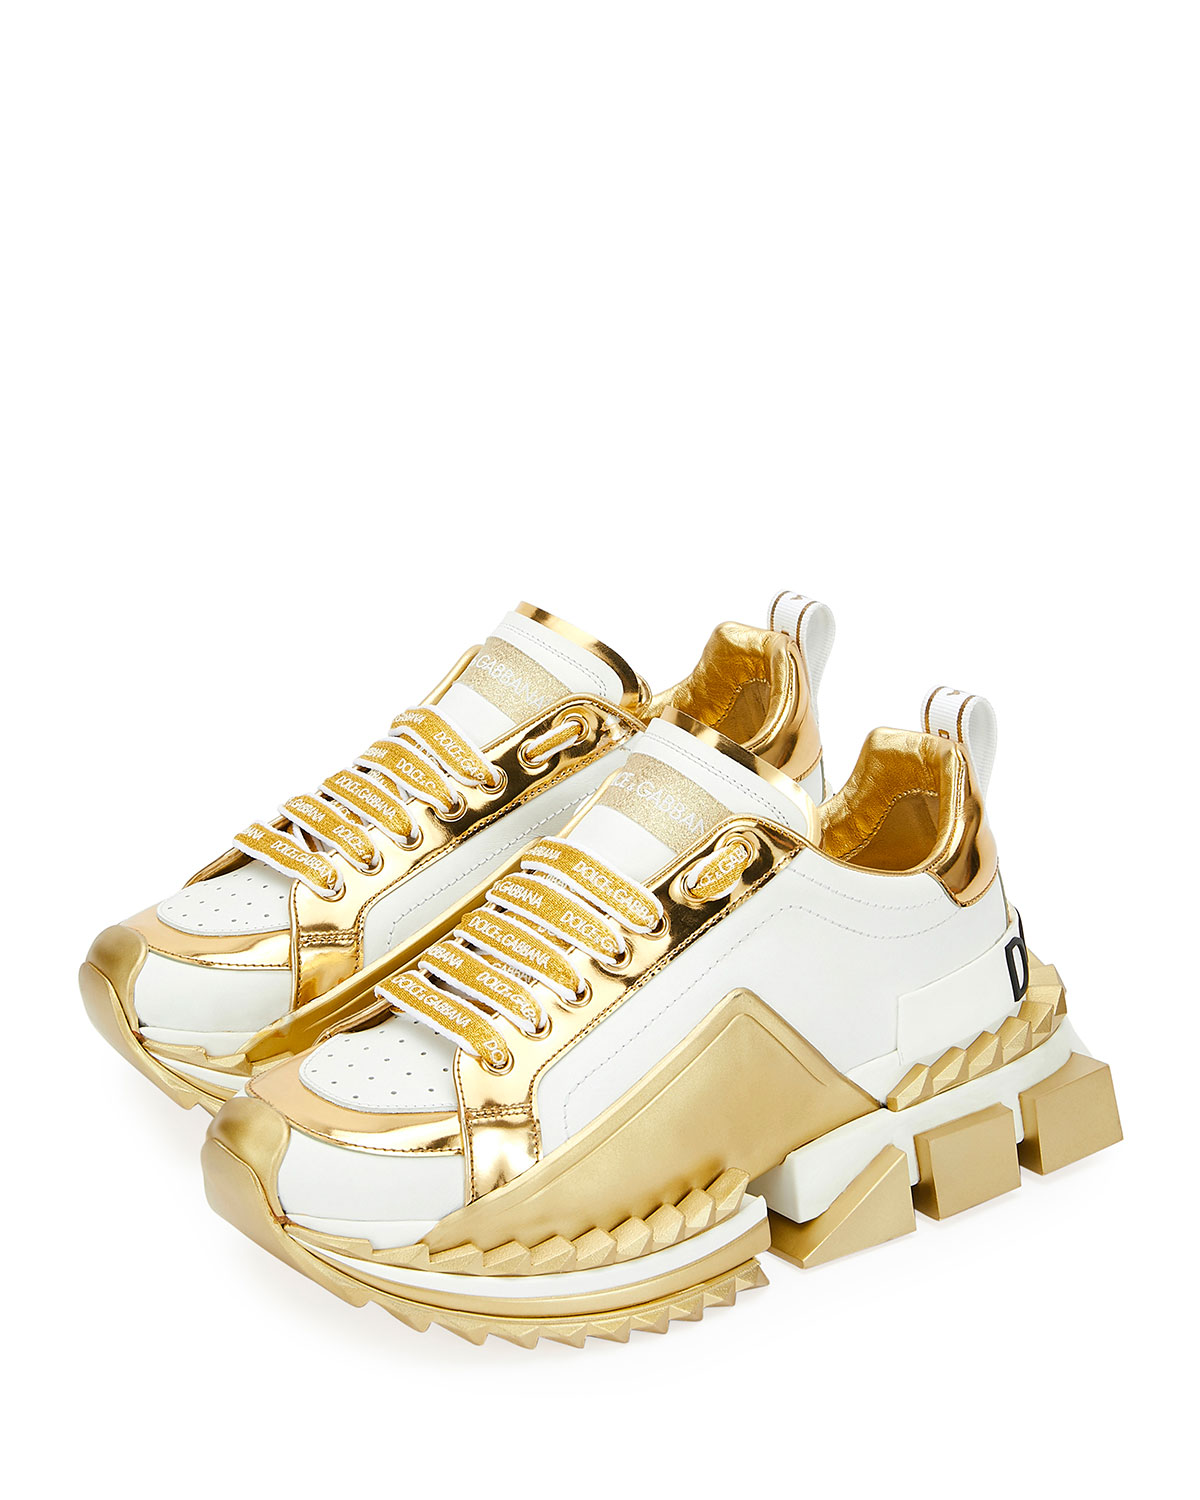 19ed59aab0ff Dolce   Gabbana Super Queen Metallic Trainer Sneakers